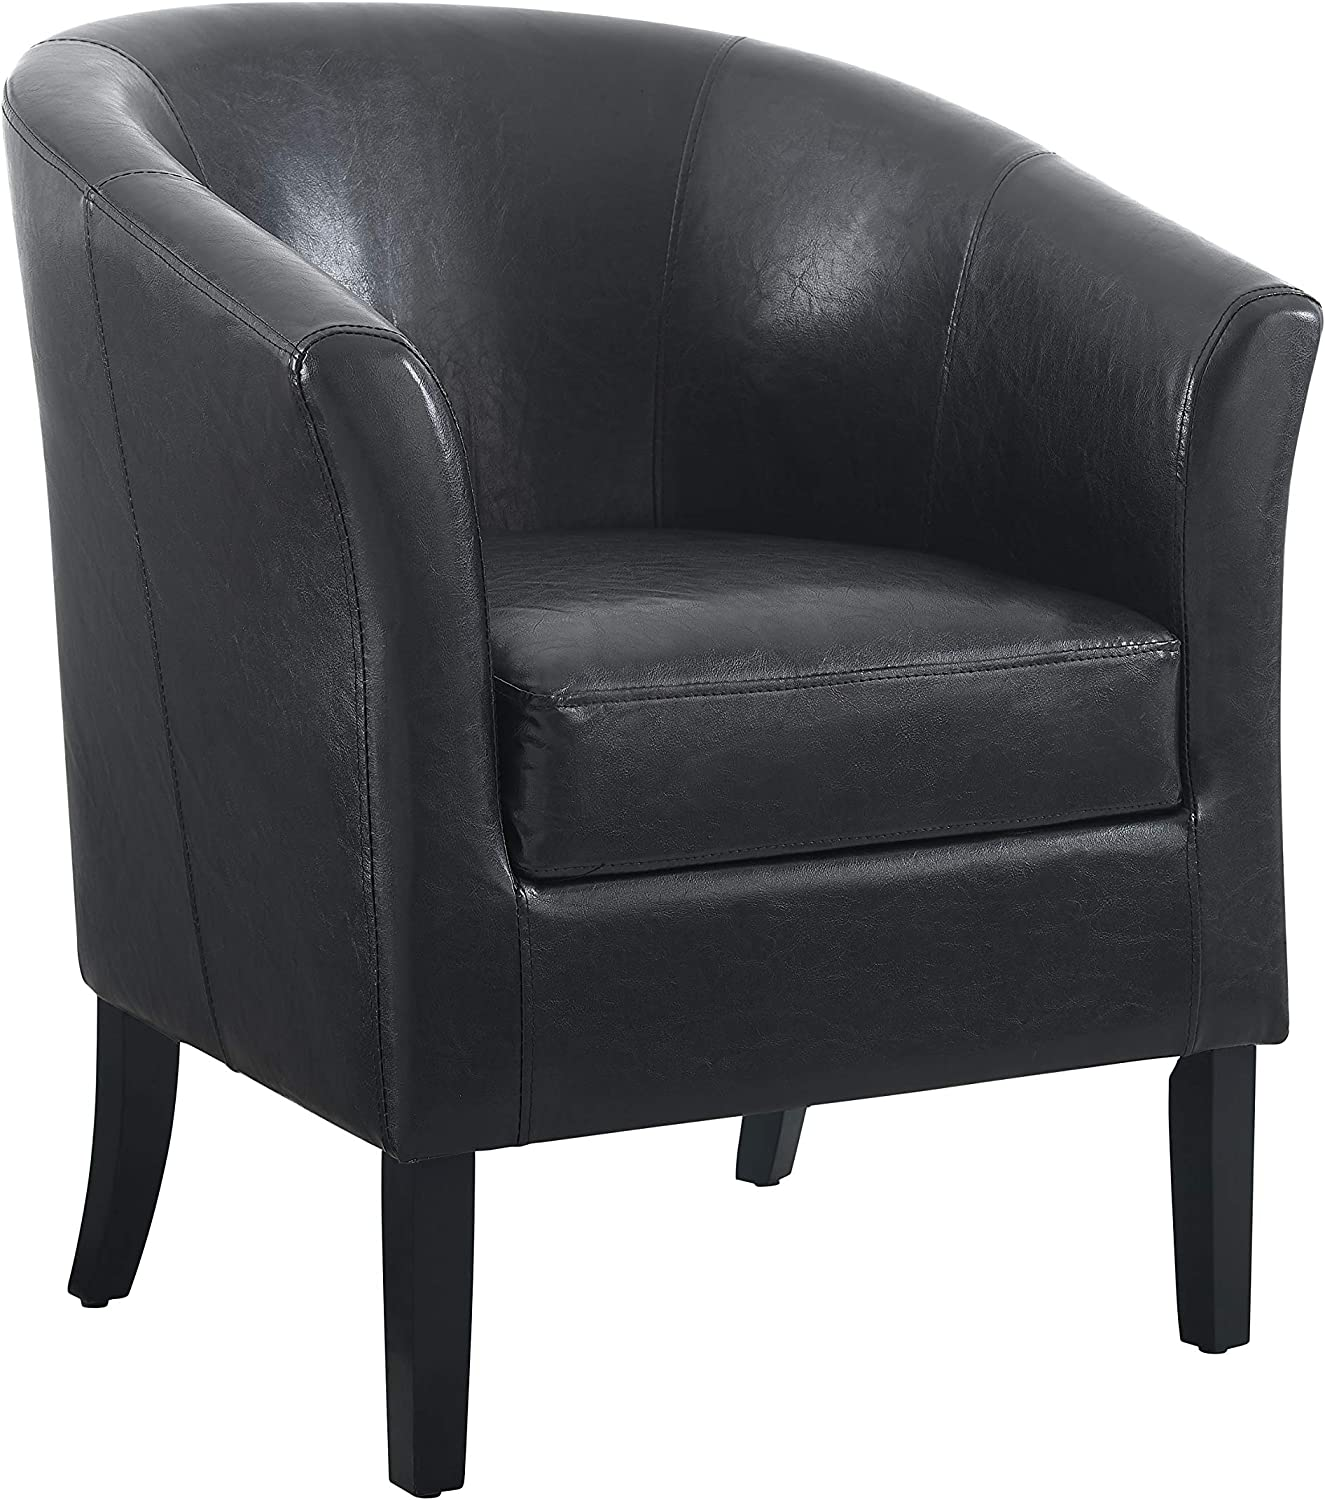 Linon Home Dcor Linon Home Decor Simon Club Chair, 33